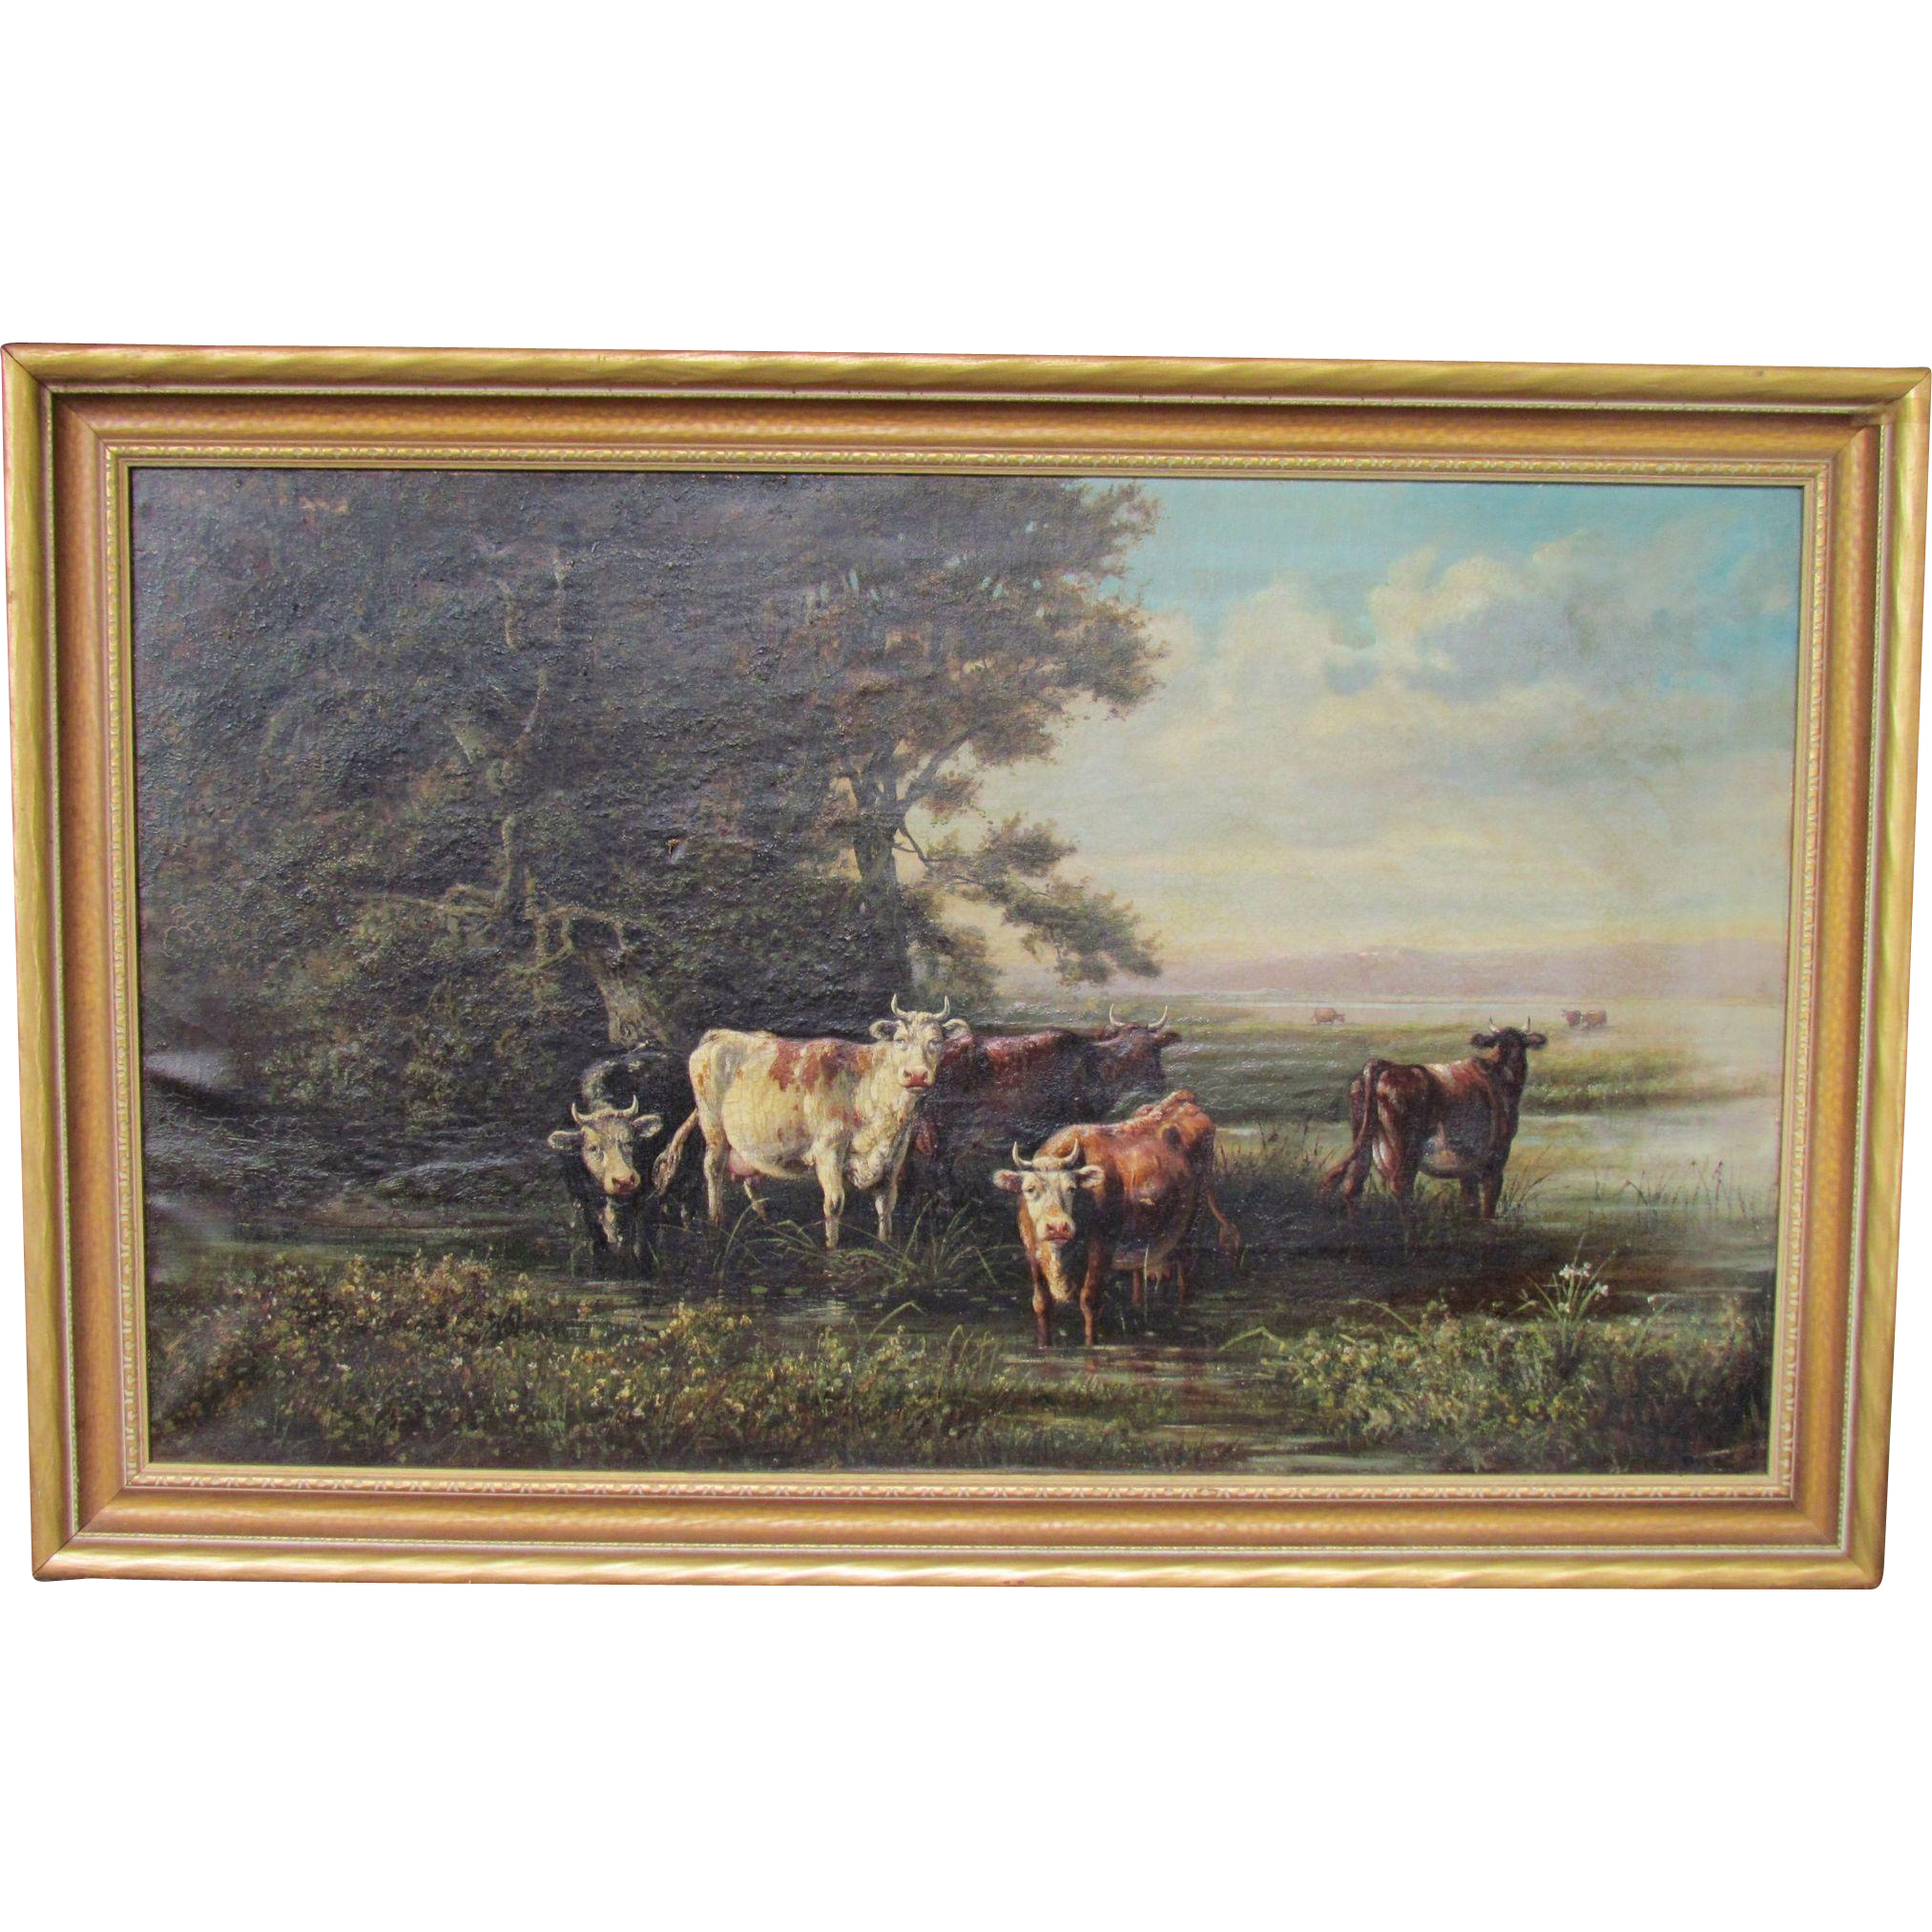 Henry BOESE 1824-1863 large oil on canvas of cows in NY landscape